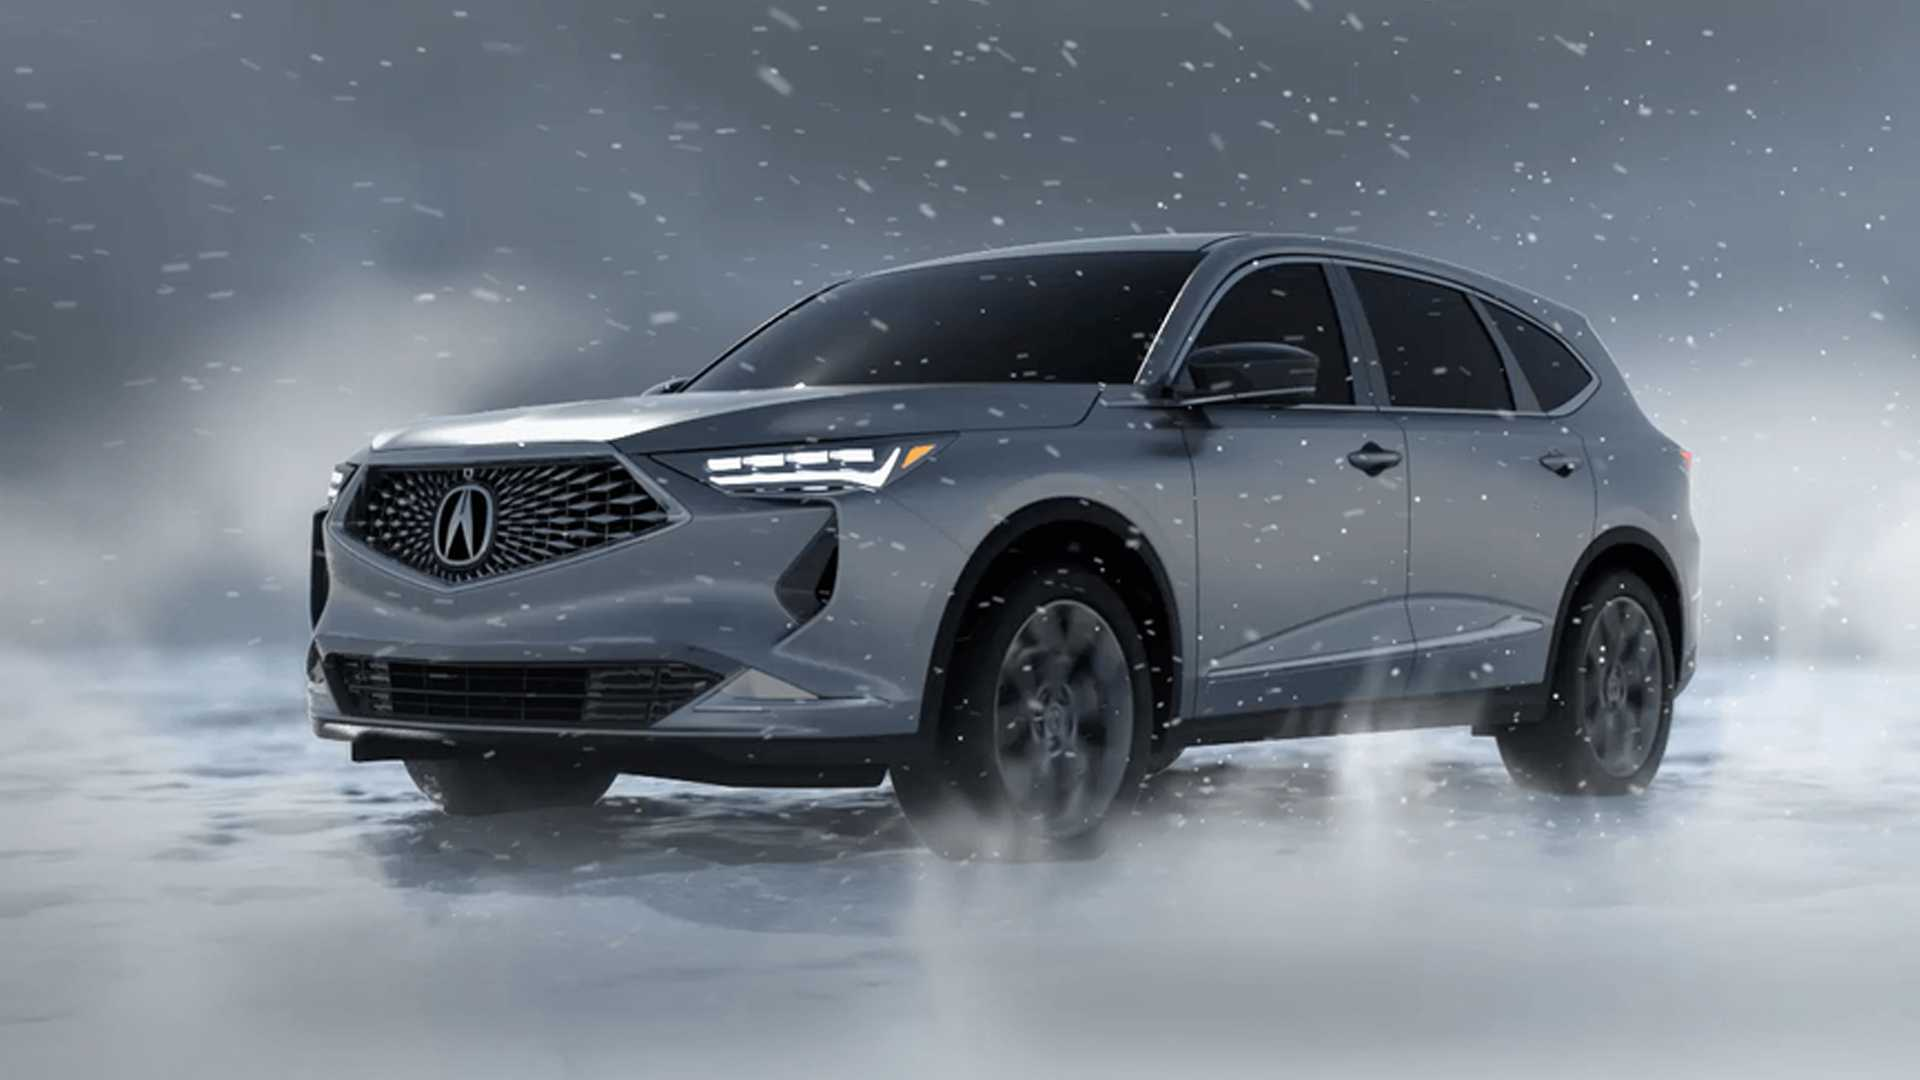 37 Great New Acura Mdx 2020 Photos for New Acura Mdx 2020